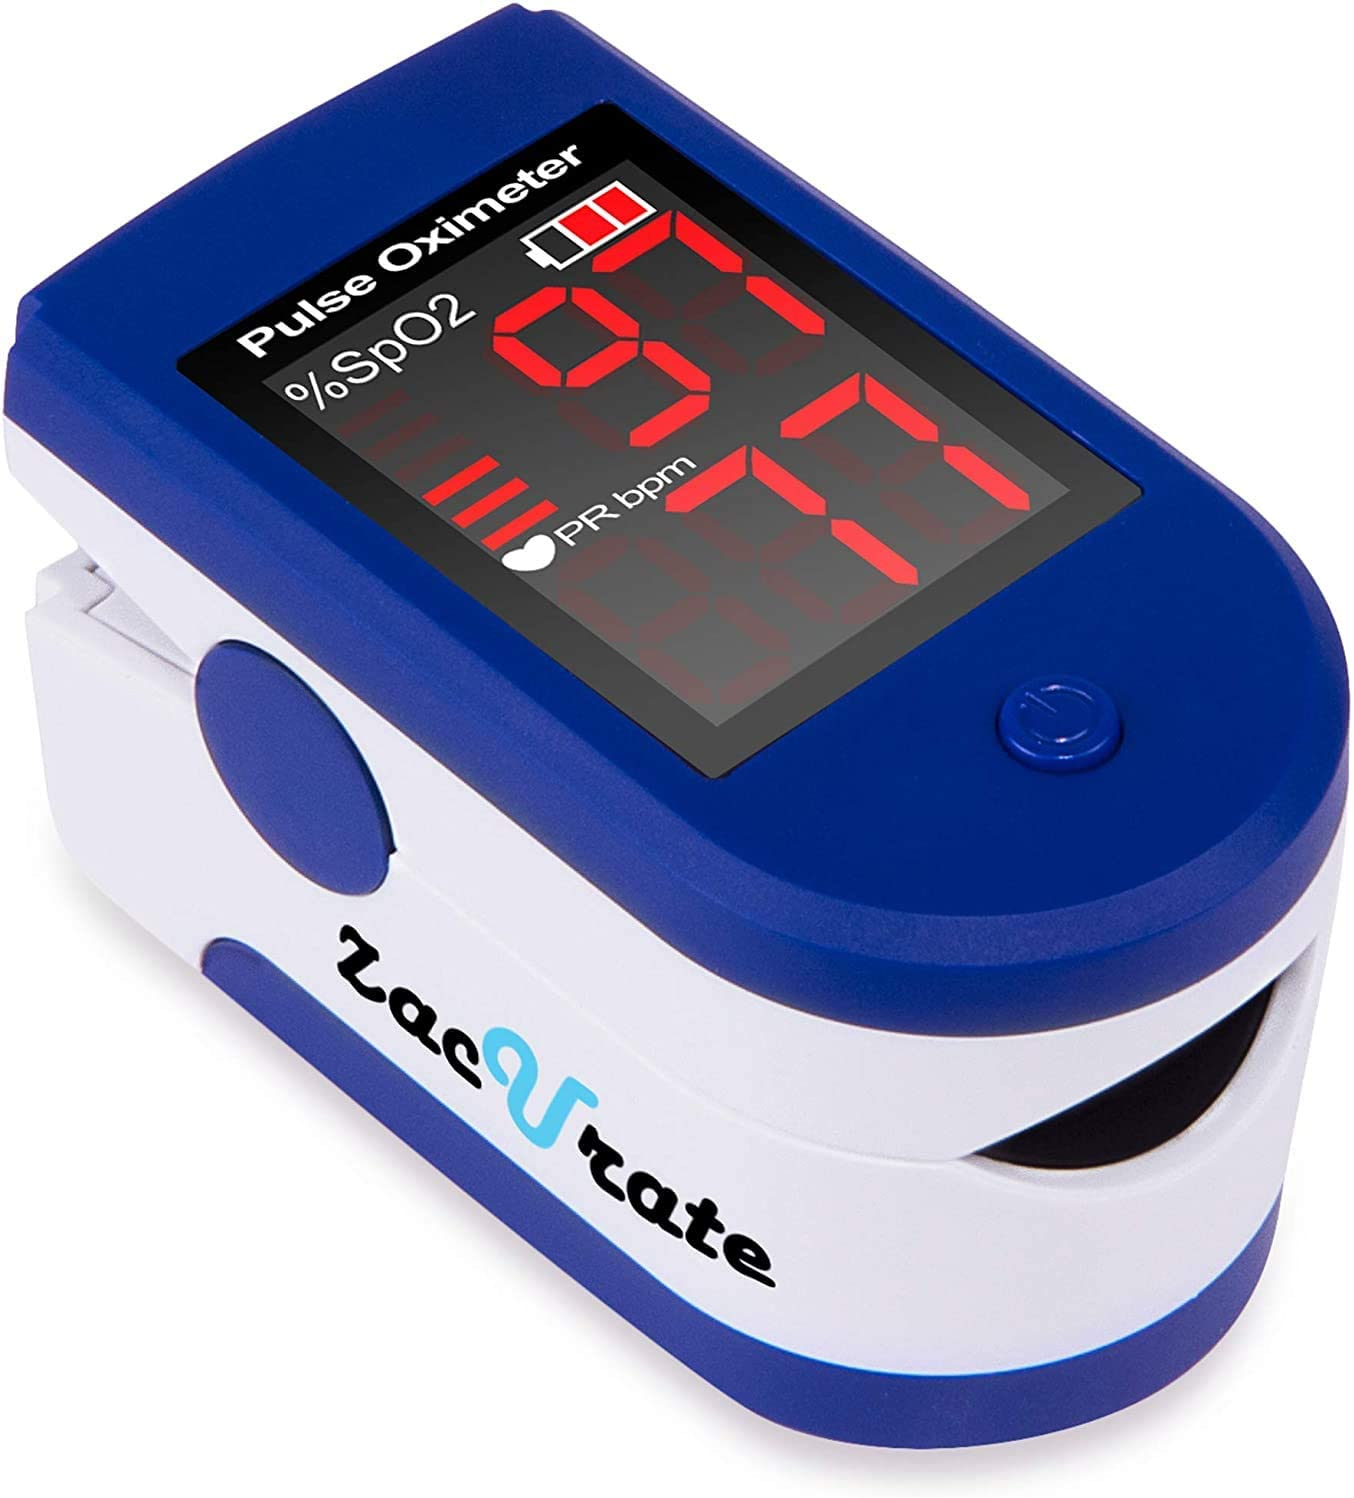 Review of Zacurate Pro Series 500DL Sporting/Aviation Fingertip Pulse Oximeter Blood Oxygen Saturation Monitor with silicon cover, batteries and lanyard (Mystic Purple)